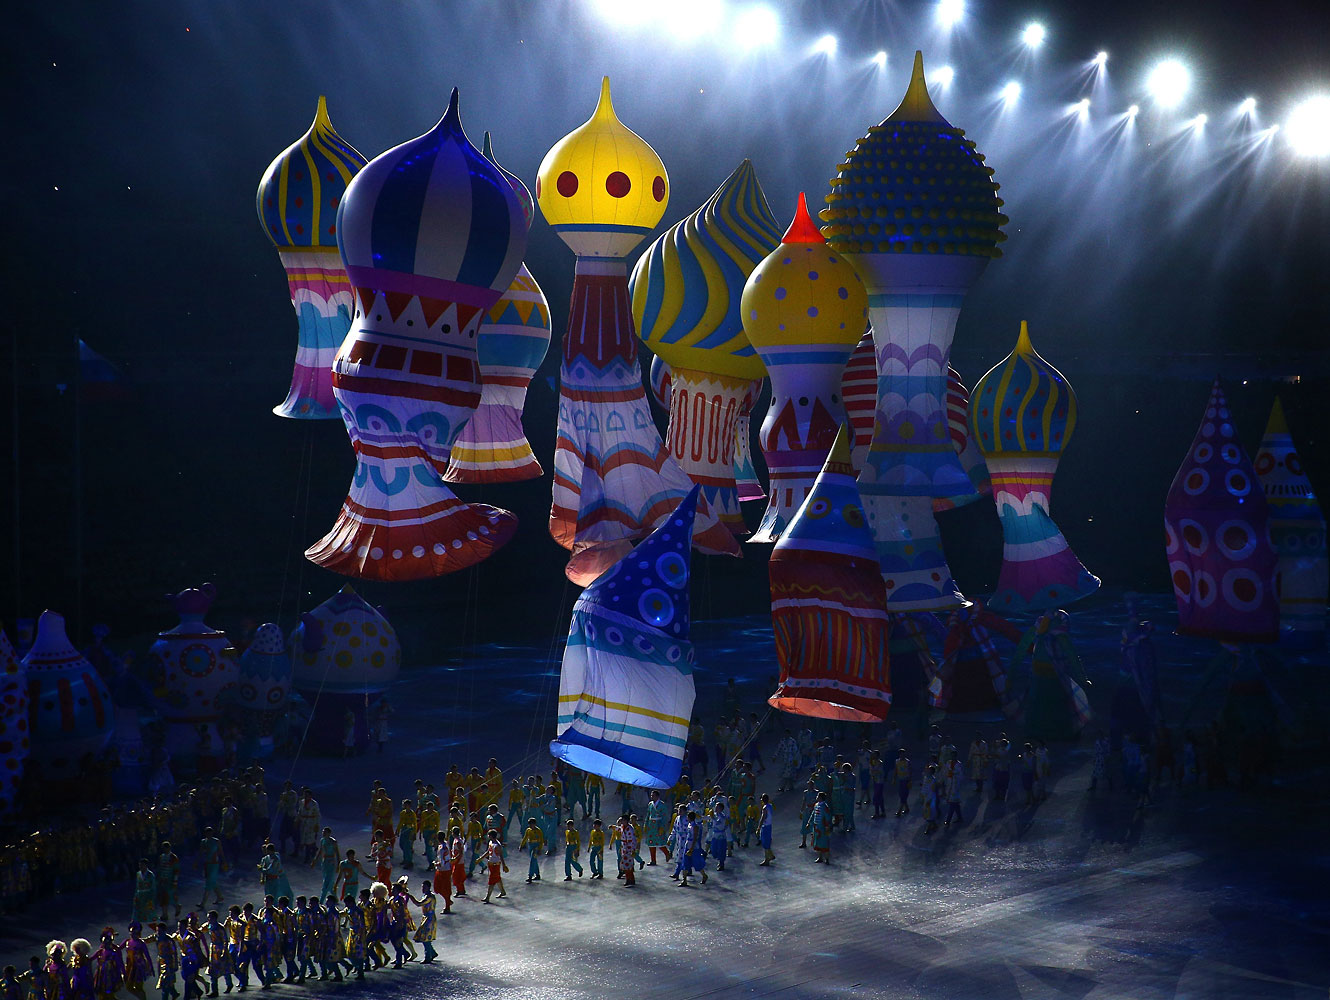 Opening Ceremony of the Sochi 2014 Winter Olympics at Fisht Olympic Stadium on Feb. 7, 2014 in Sochi, Russia.